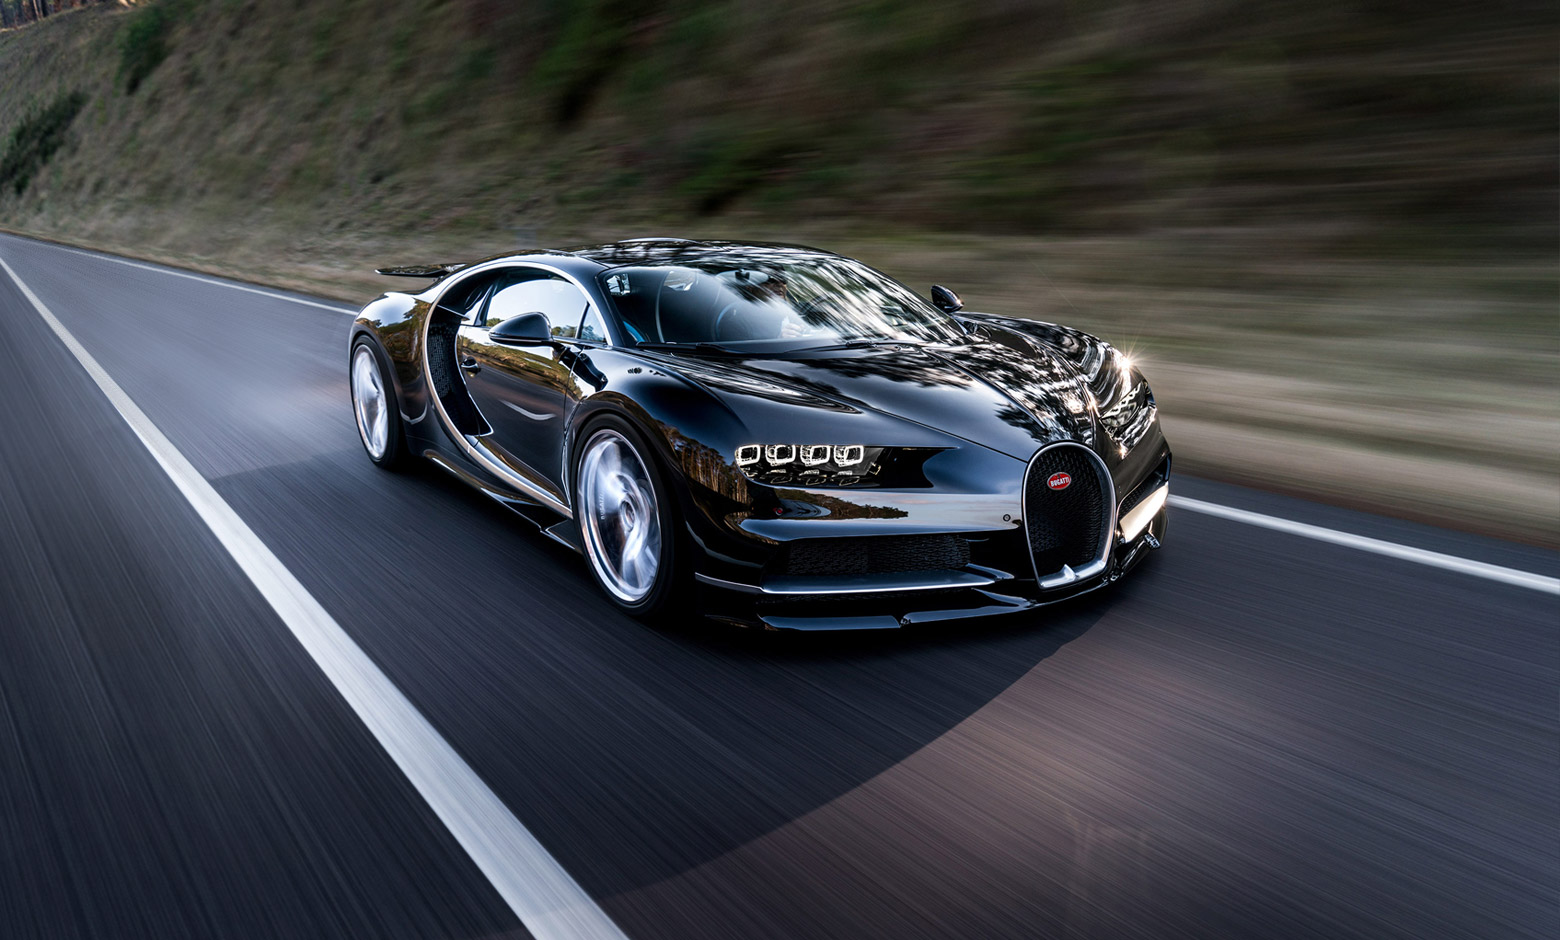 10 most powerful cars in the world - Bugatti Chiron